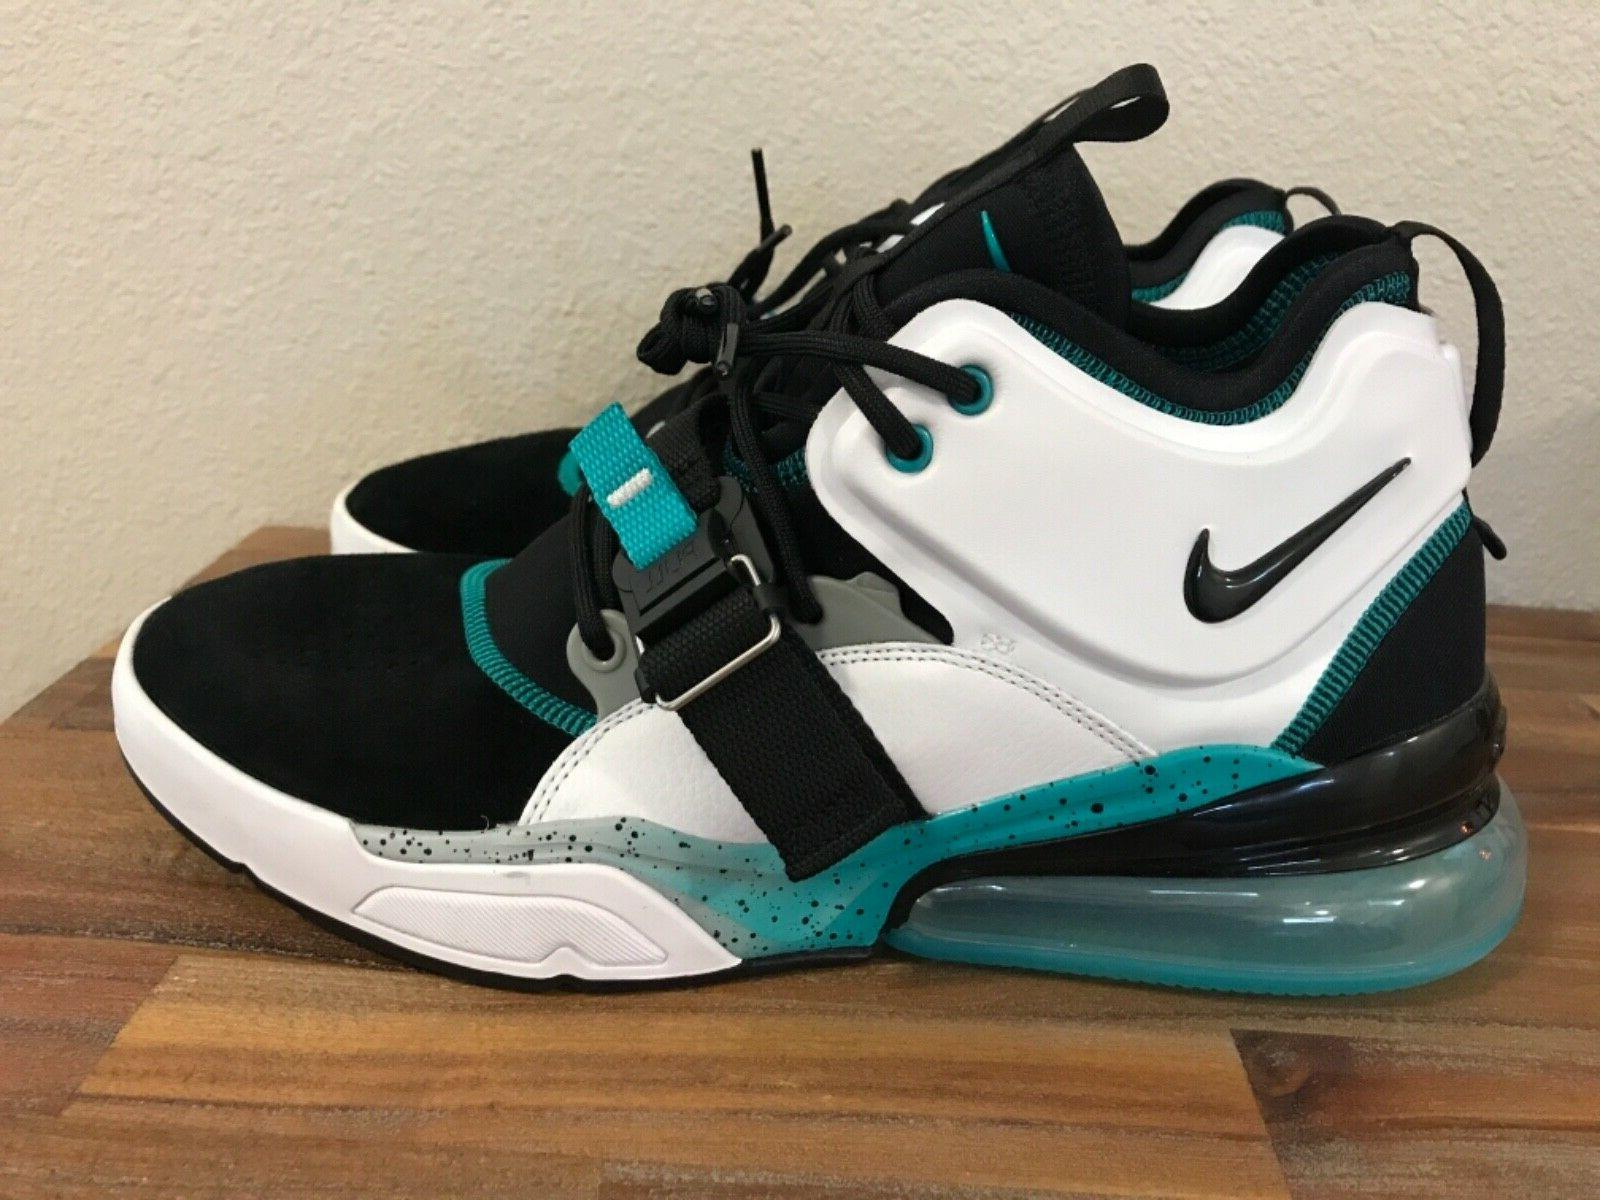 new air force 270 ah6772 008 black